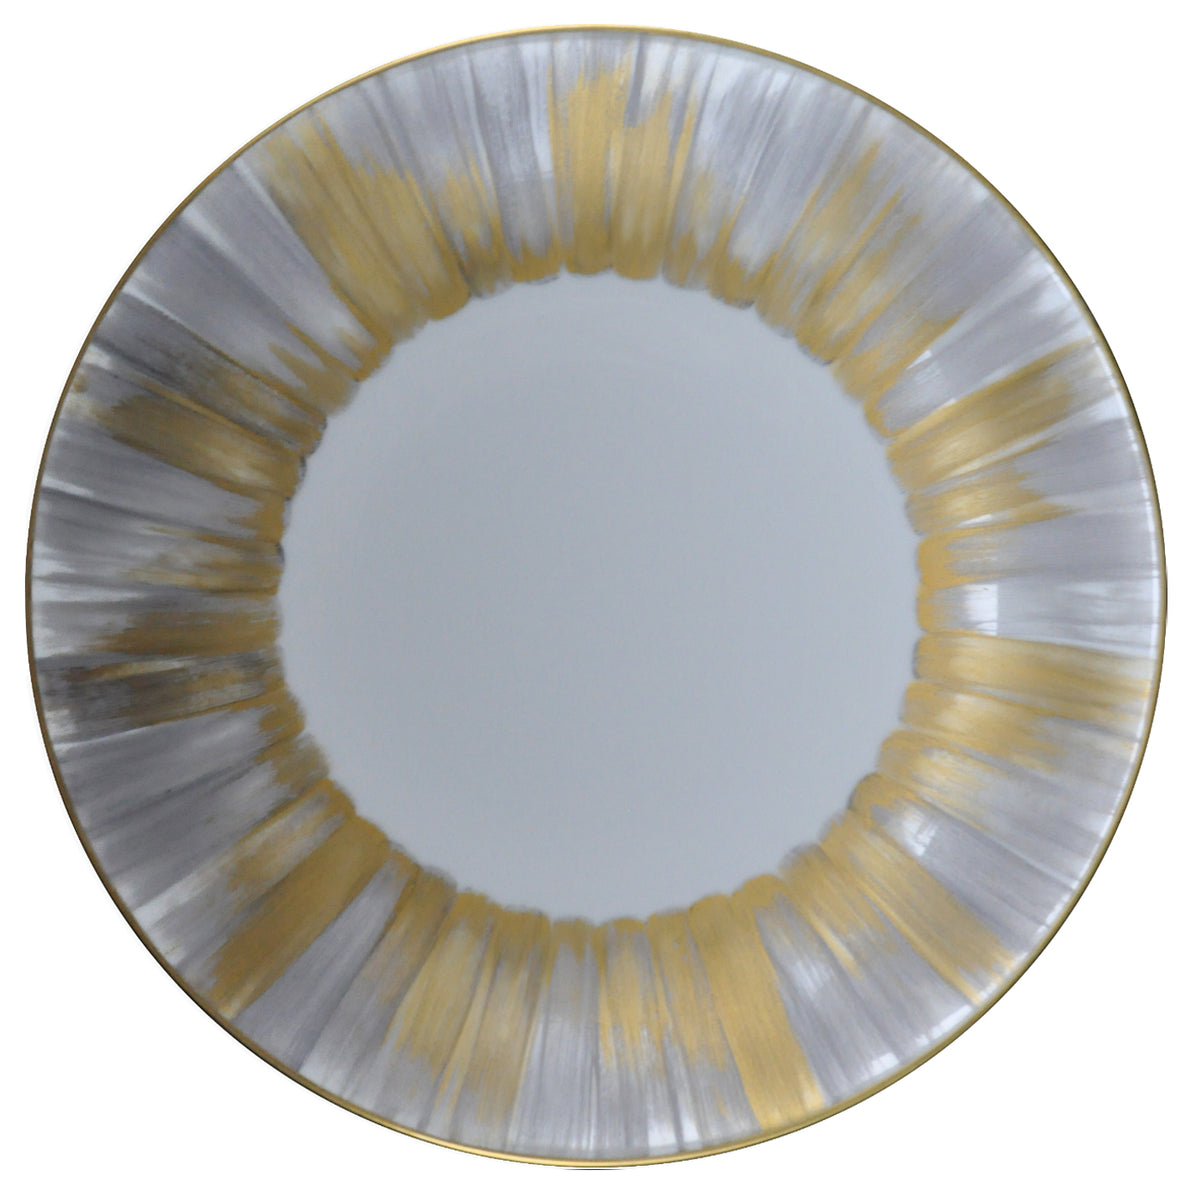 Panache Presentation Plate Silver and Gold